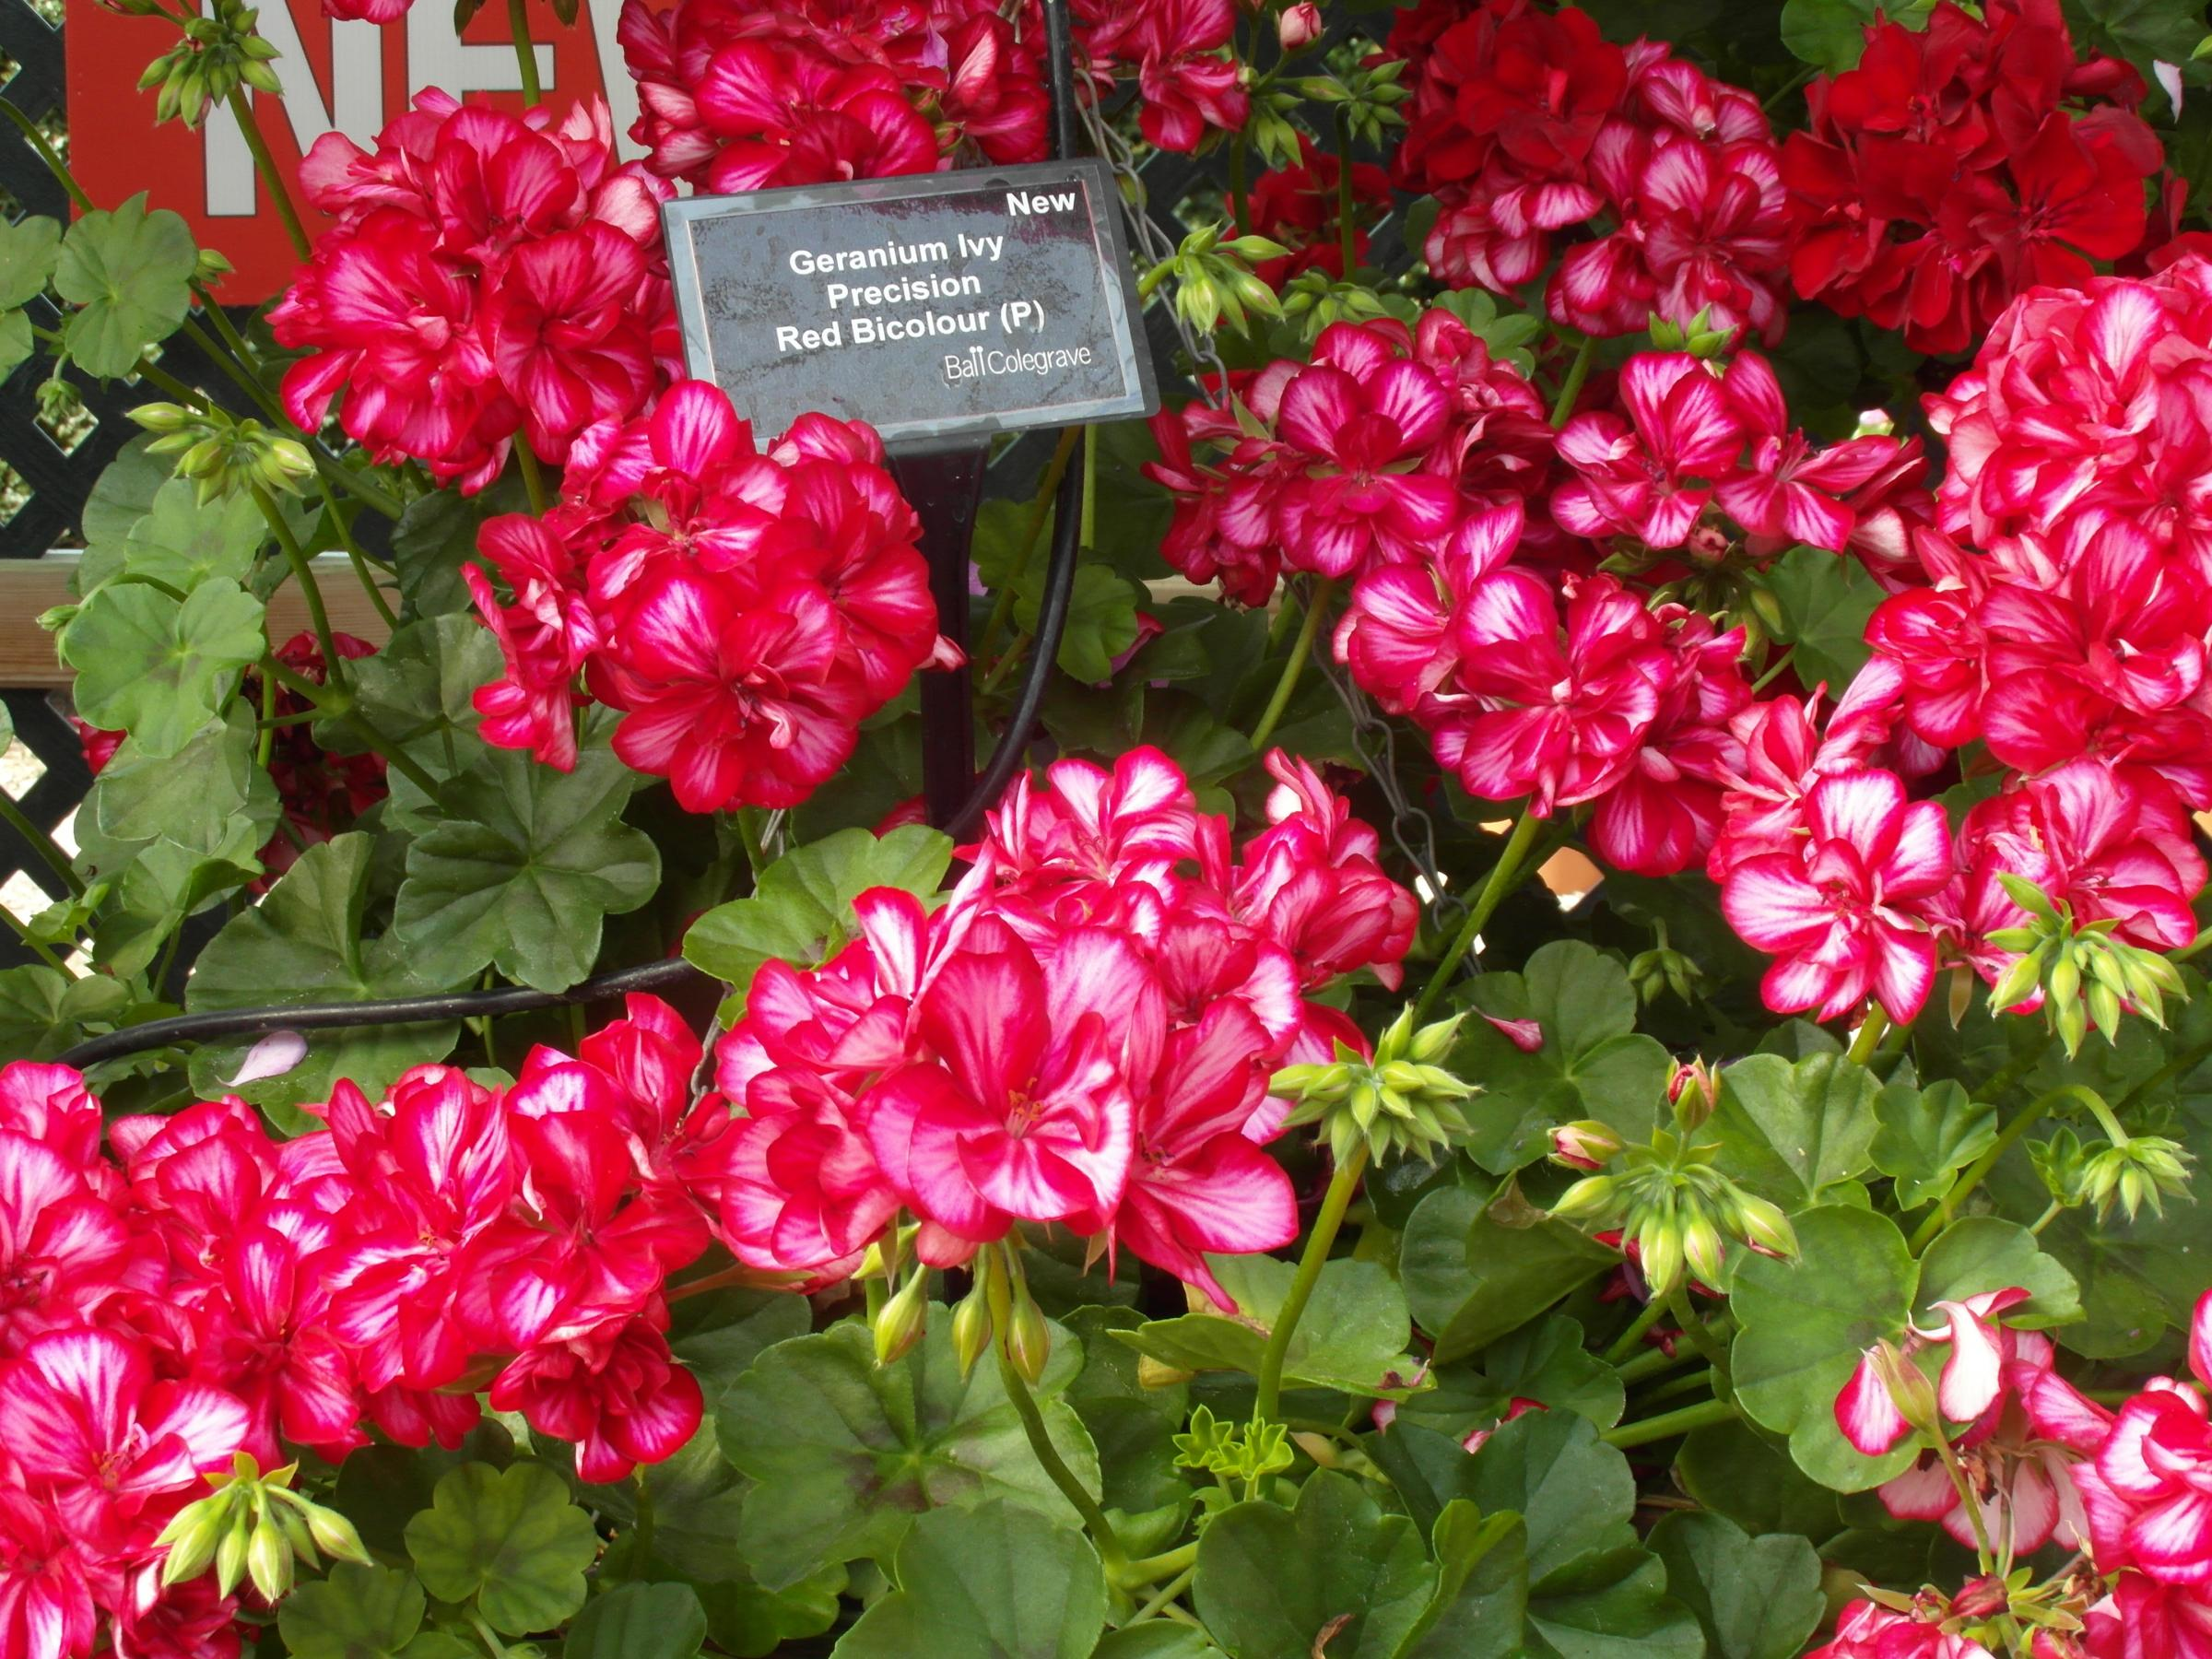 Witney Horticultural Society's Annual Plant Sale